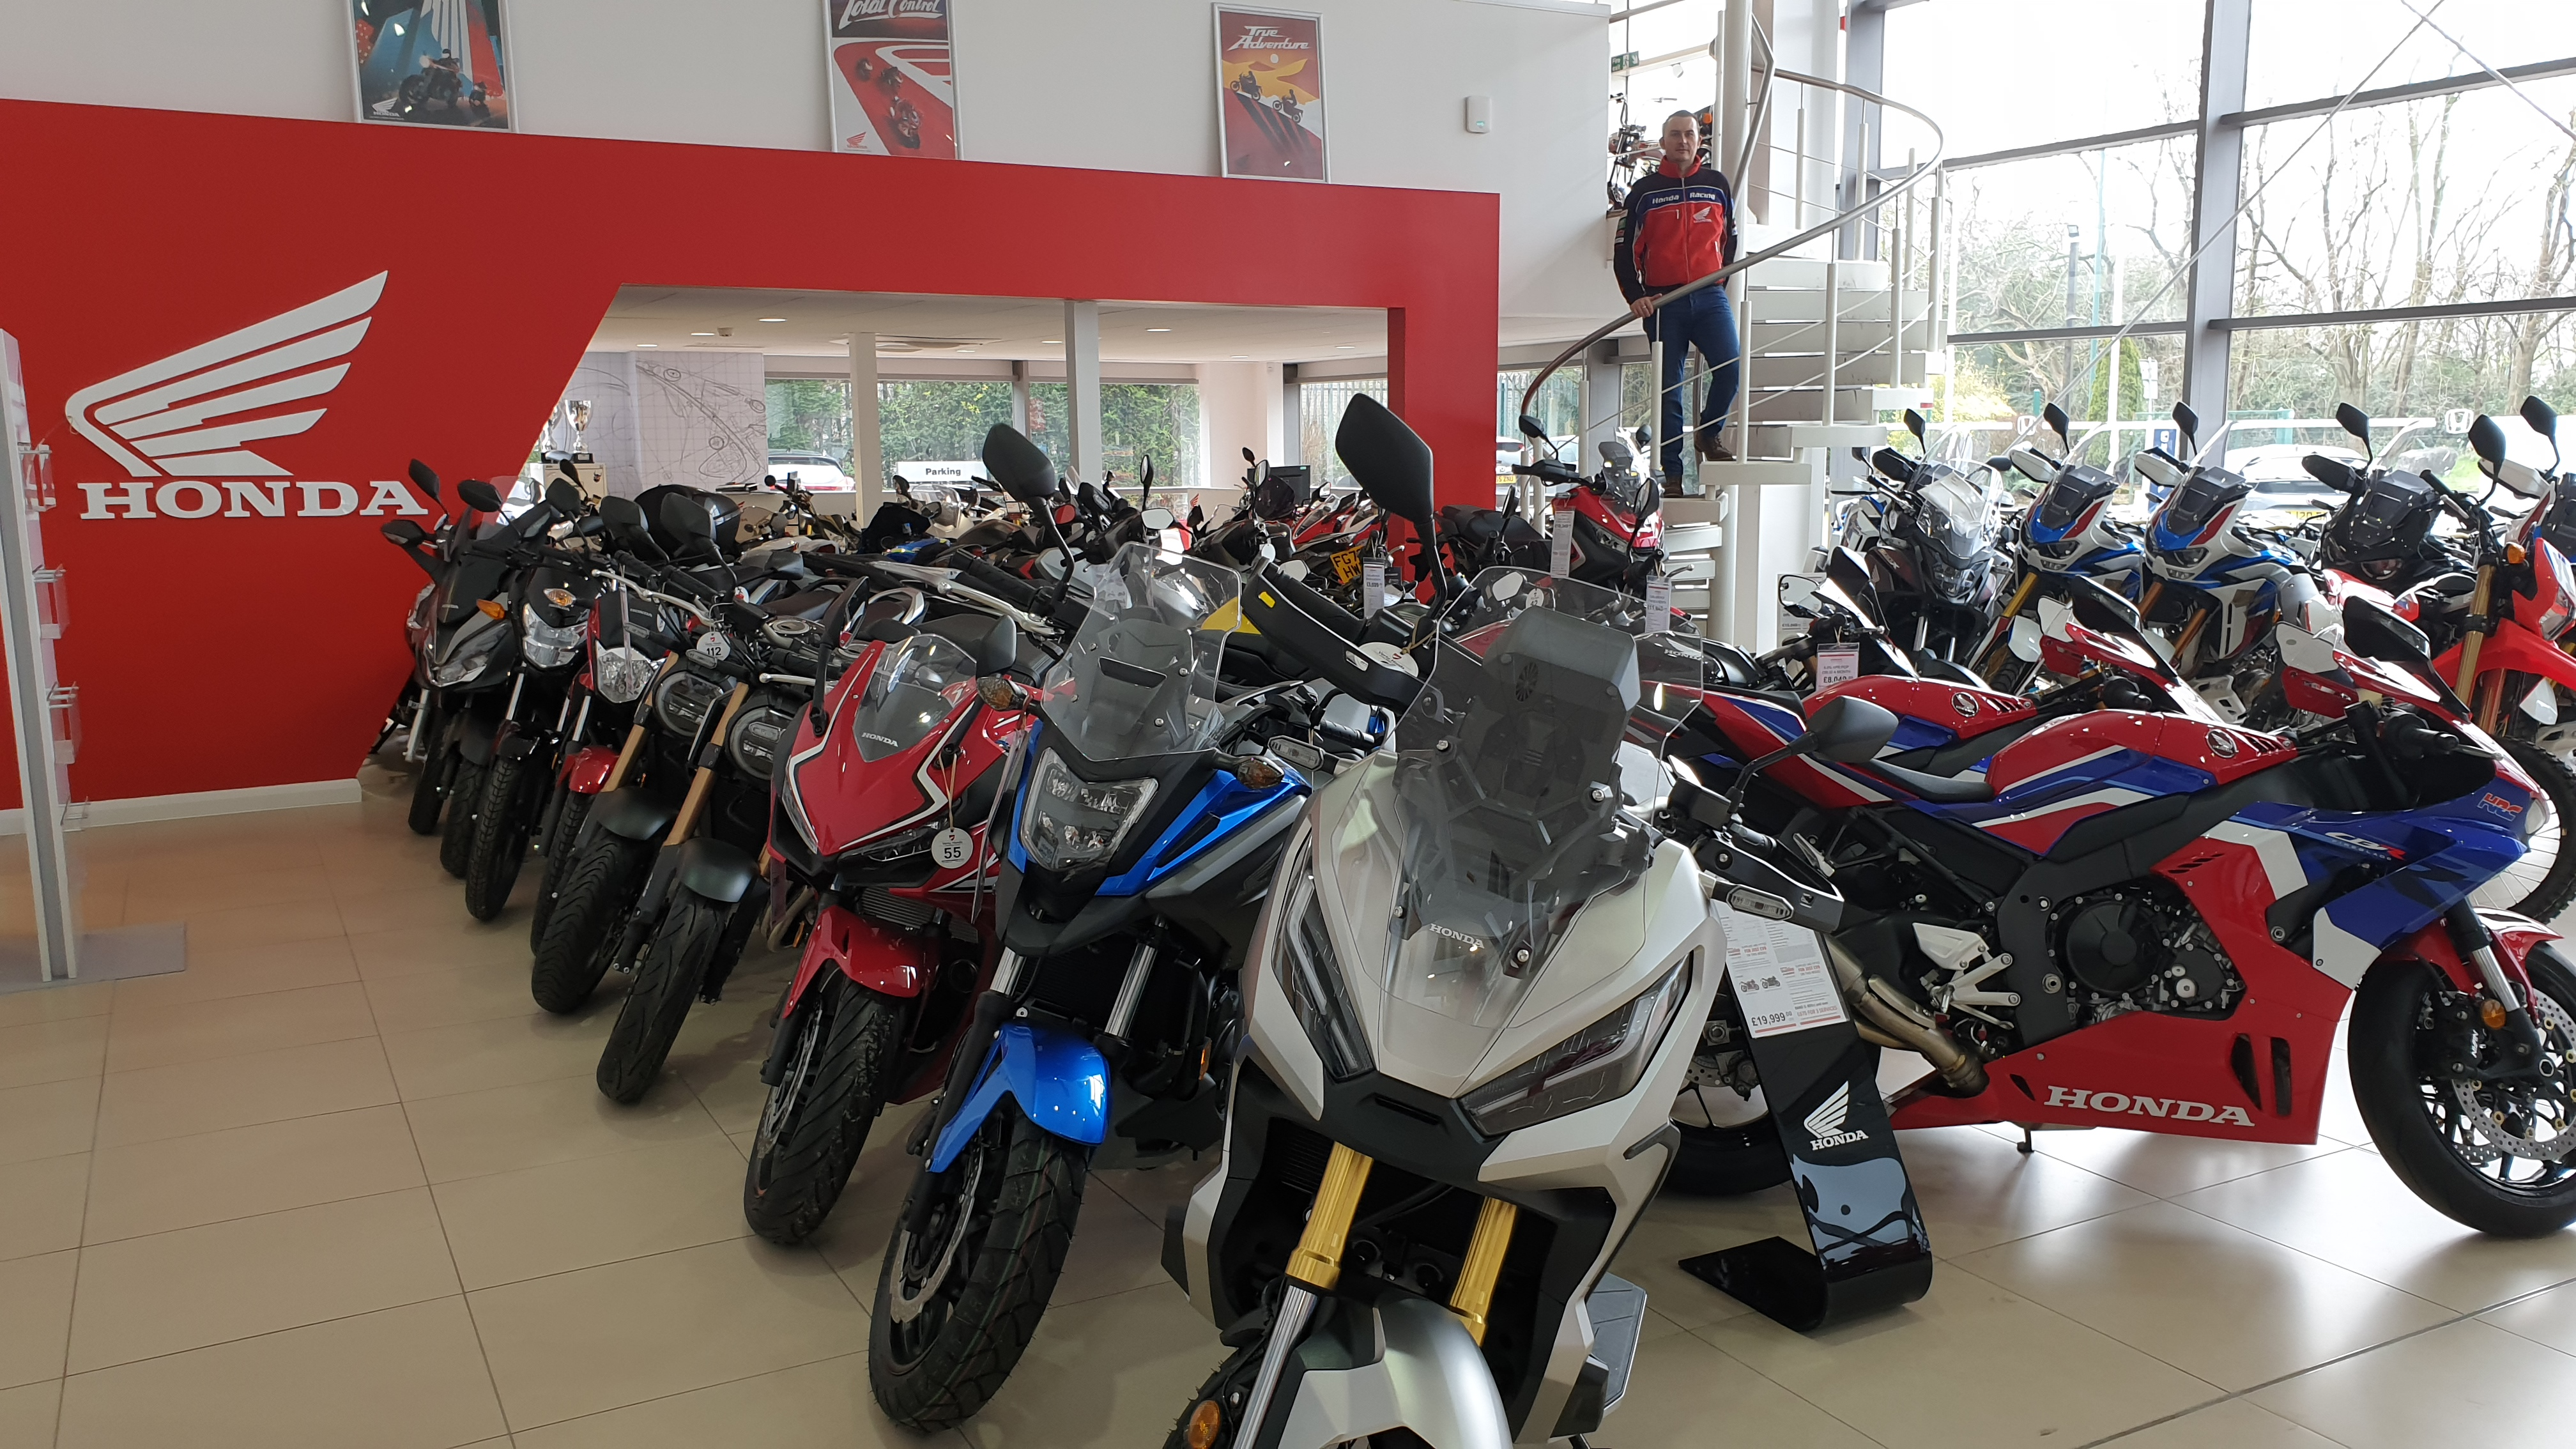 Vertu Motors has invested £650,000 to create a new destination for East Midlands motorcycle enthusiasts.